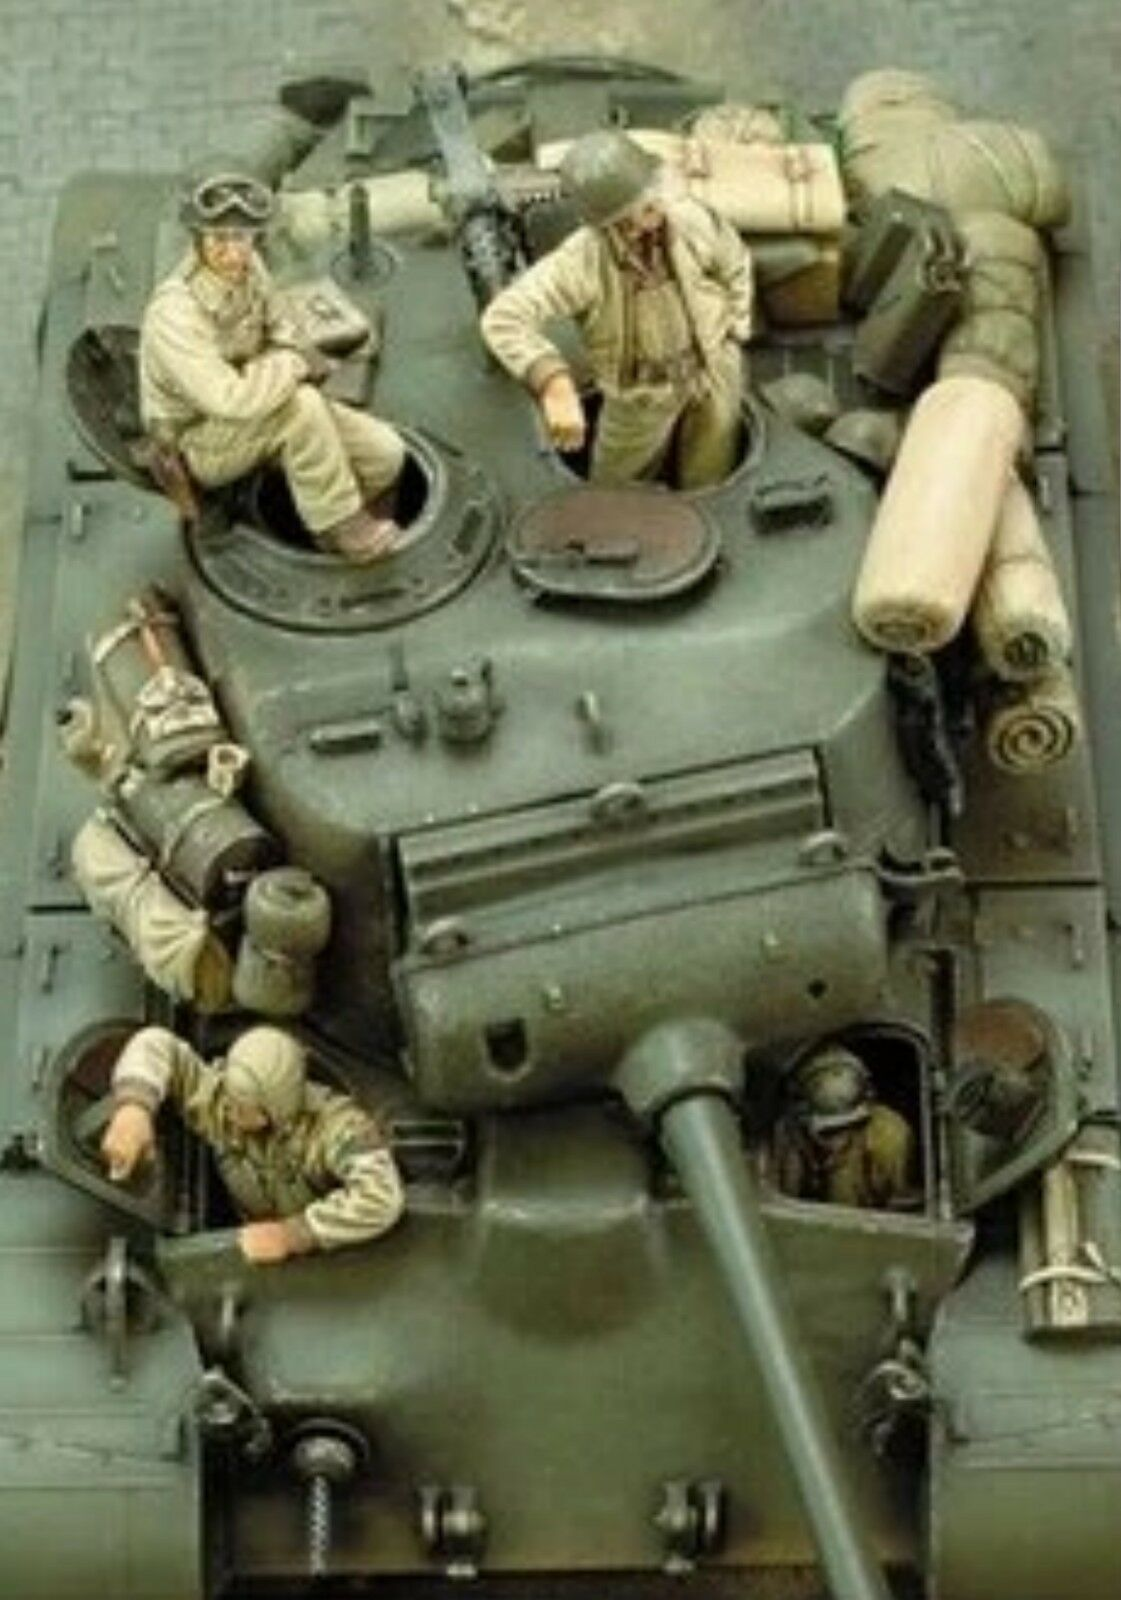 1 35 Scale Resin Model Kit American Tank Crew  (4 Figures, No Tank)